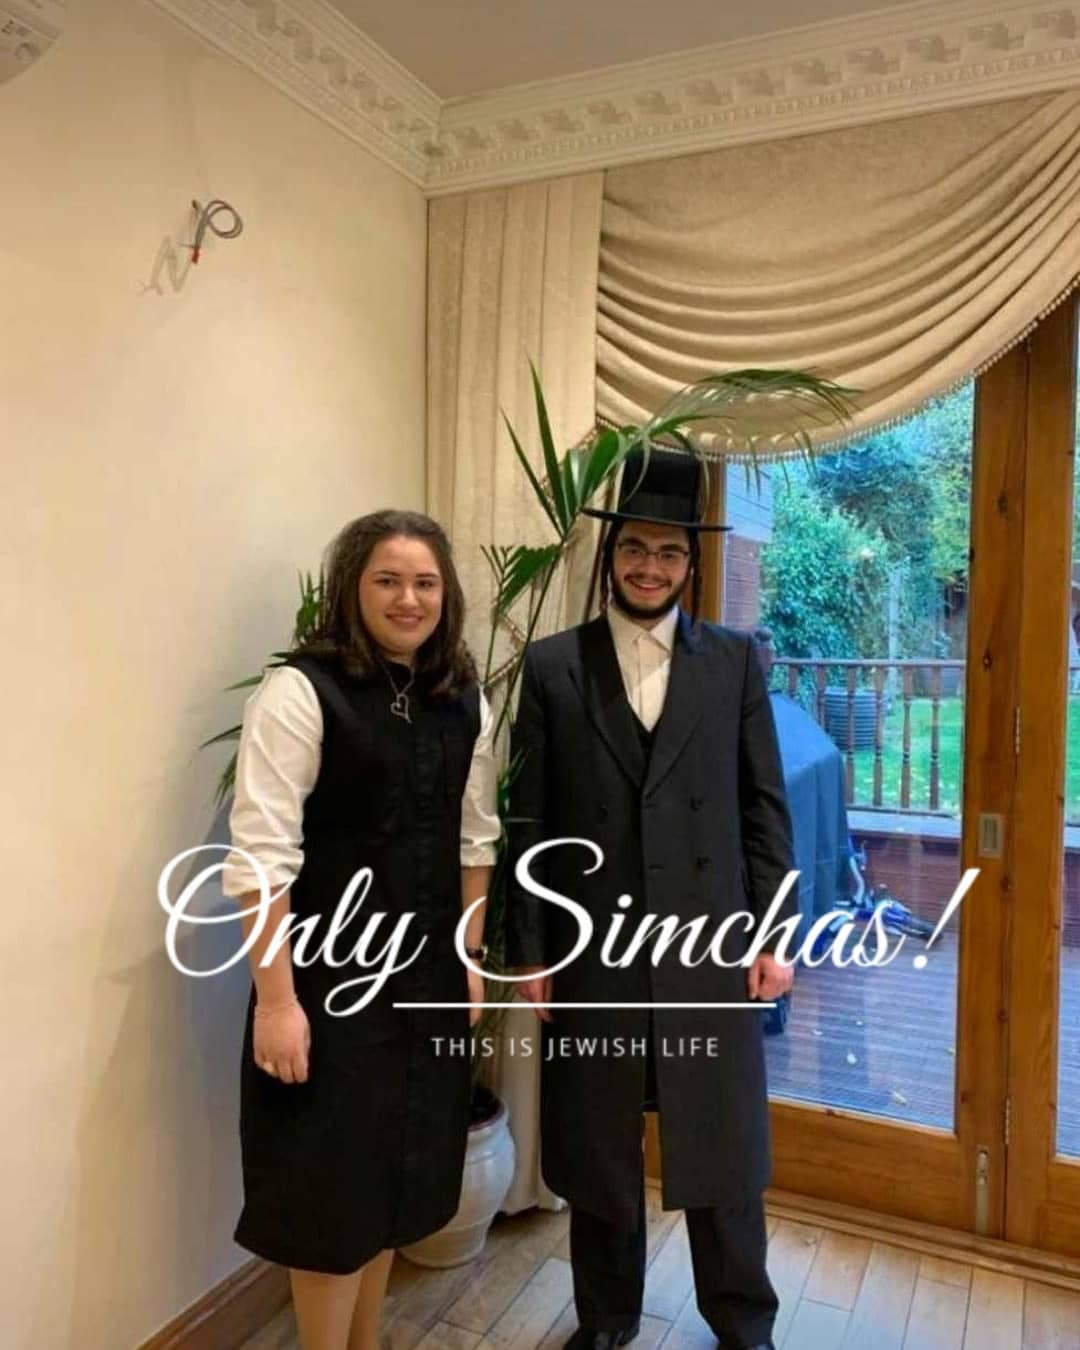 Engagement of Shimmy Shwartz (#Goldersgreen) to Kallah Greenfeld (#StamfordHill)! #onlysimchas ·